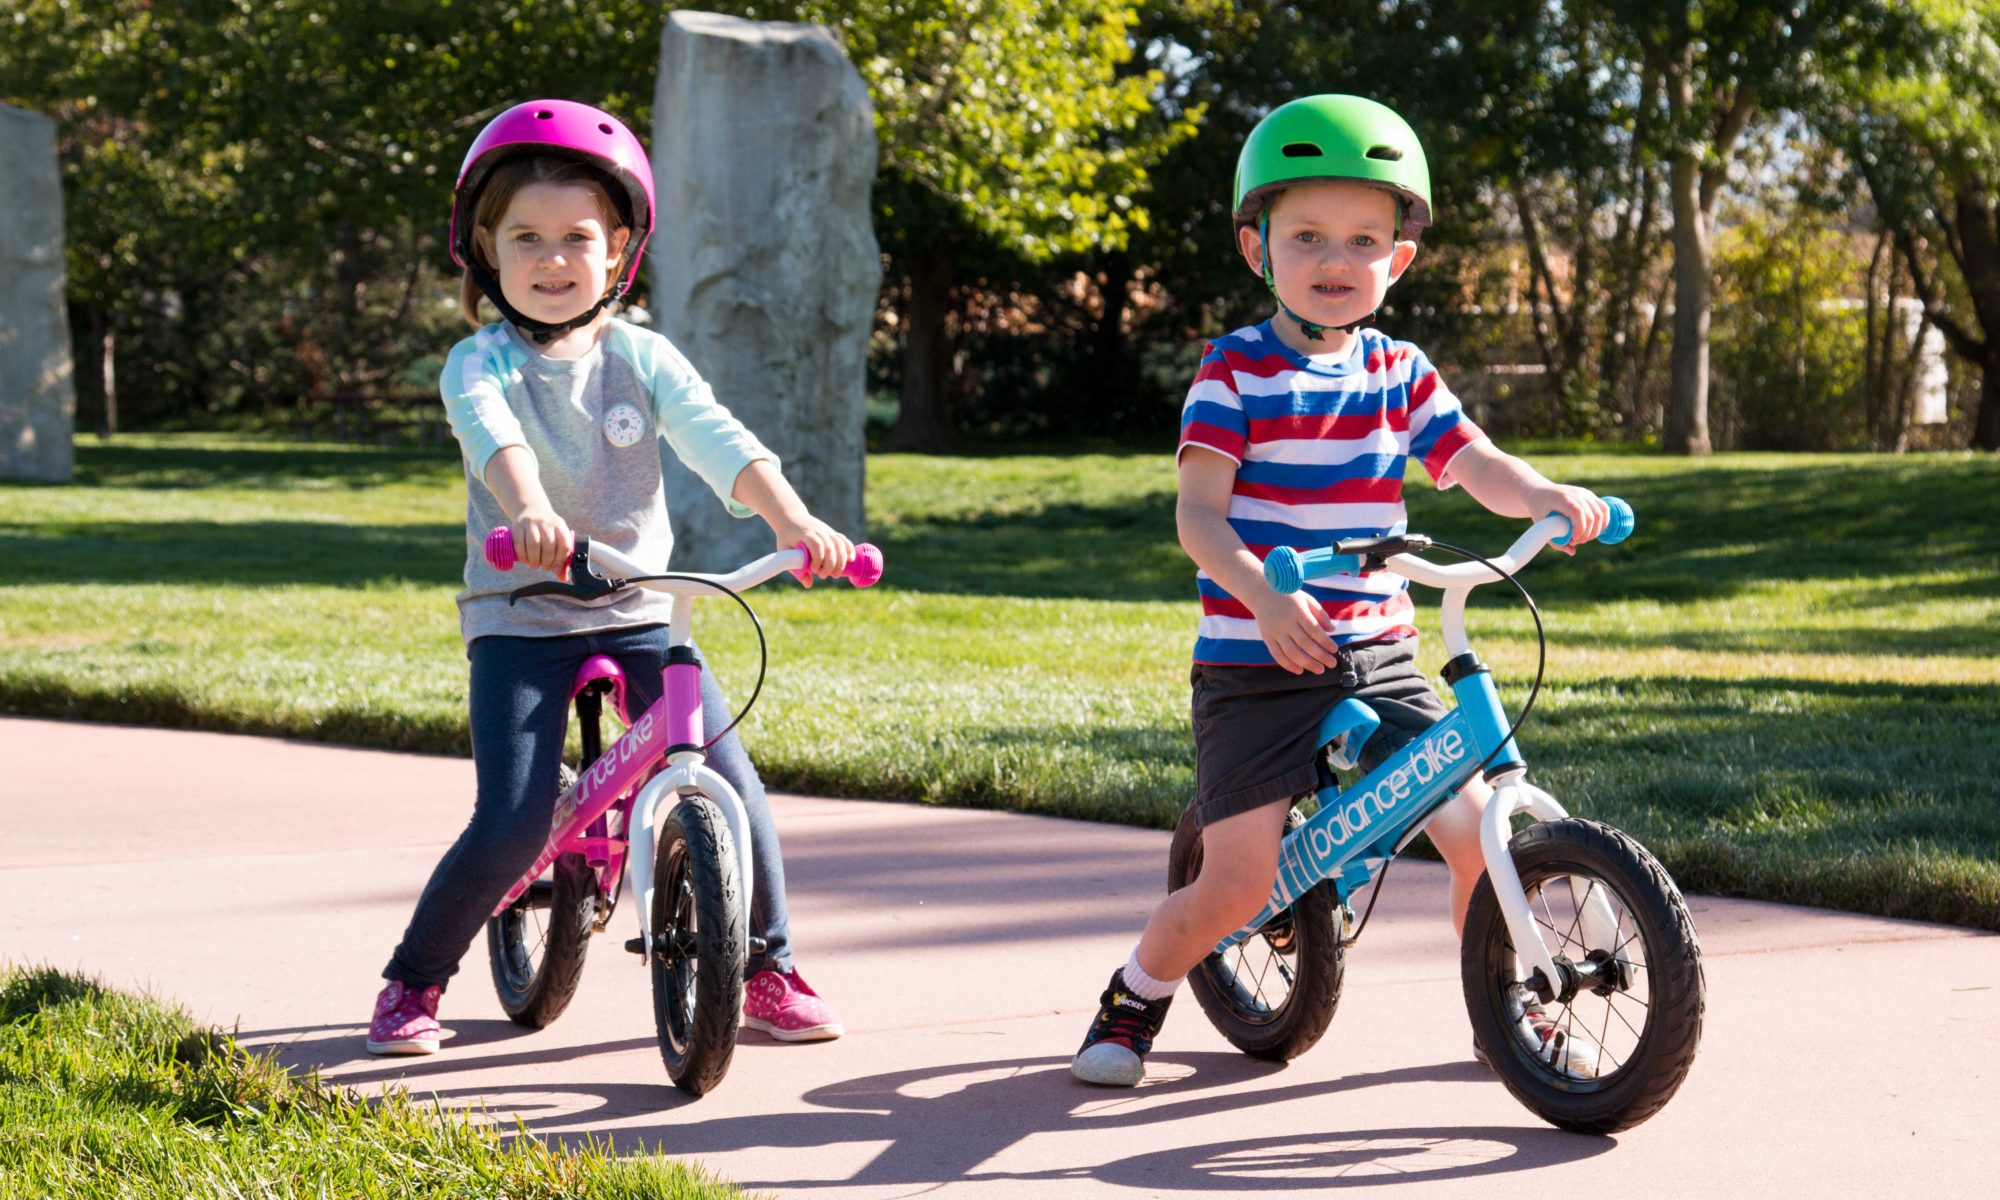 Kids Toddler Bike | Push bikes made to teach kids how to ride a bicycle